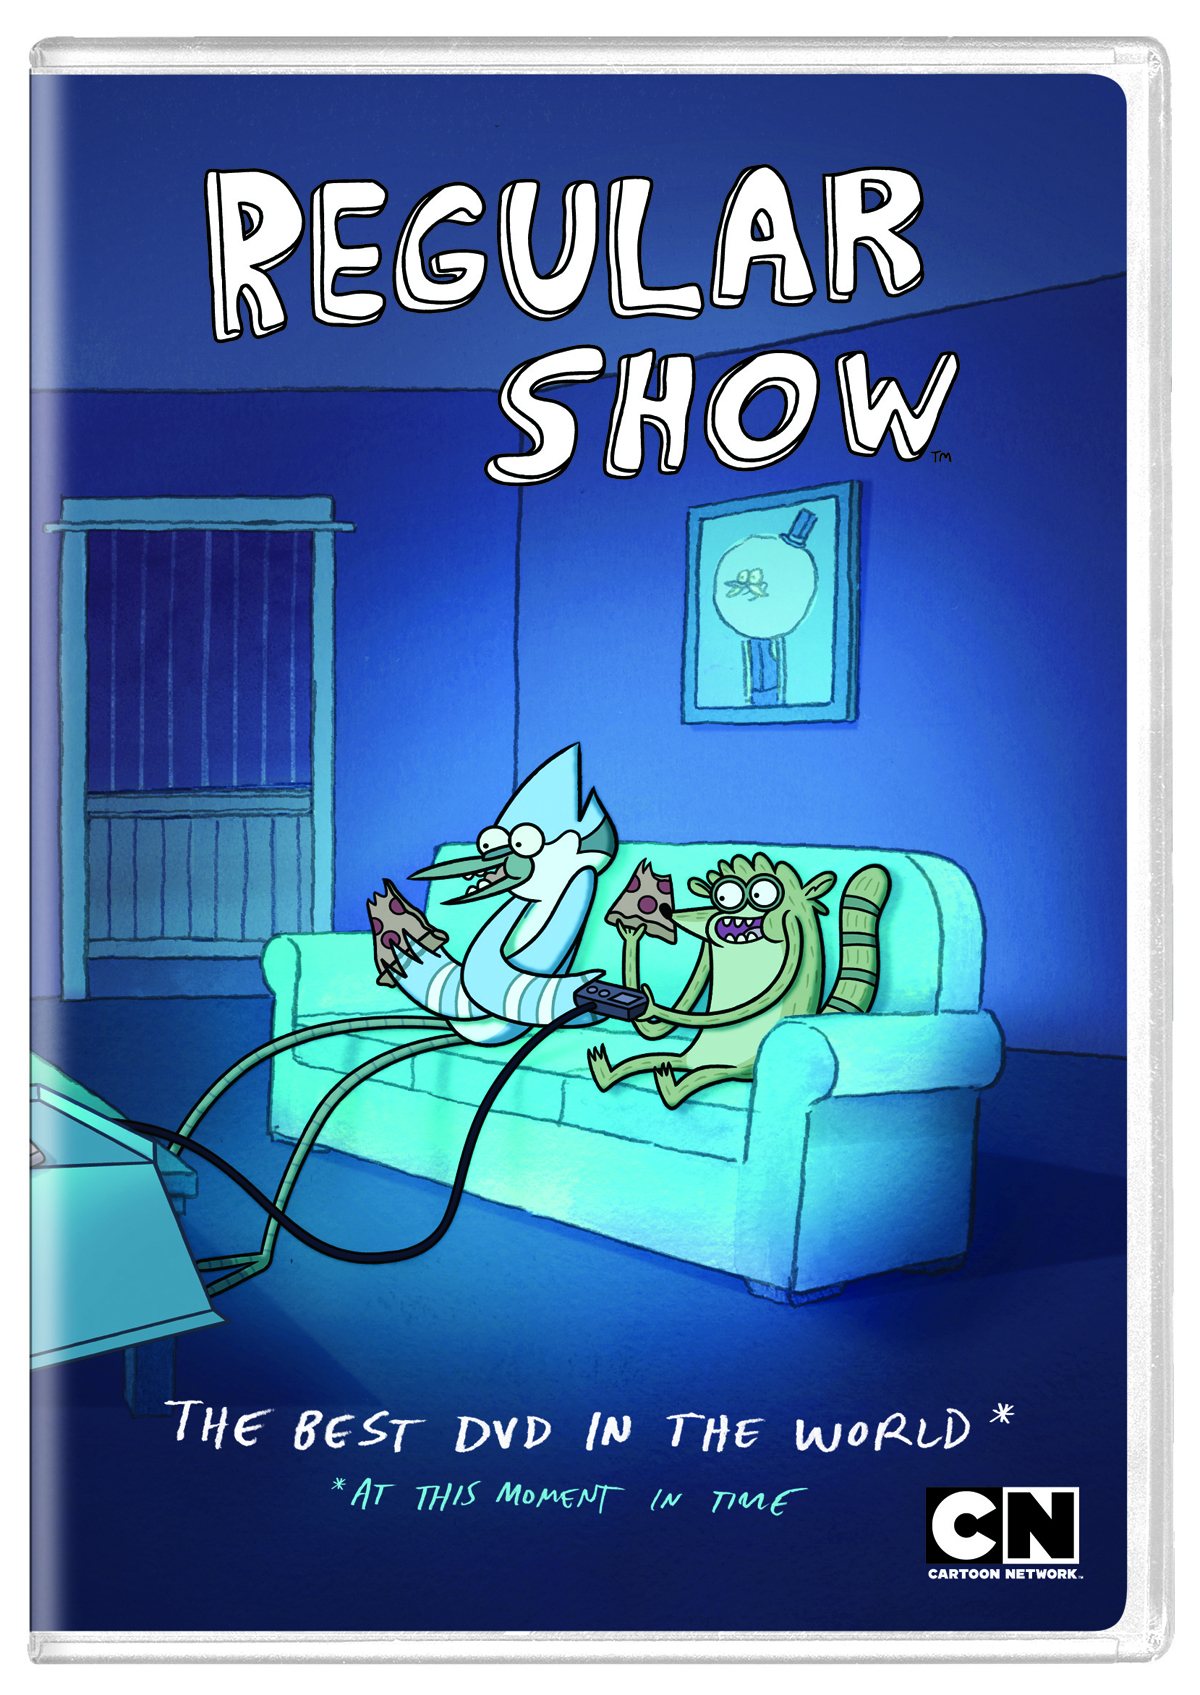 REGULAR SHOW DVD THE BEST DVD IN THE WORLD